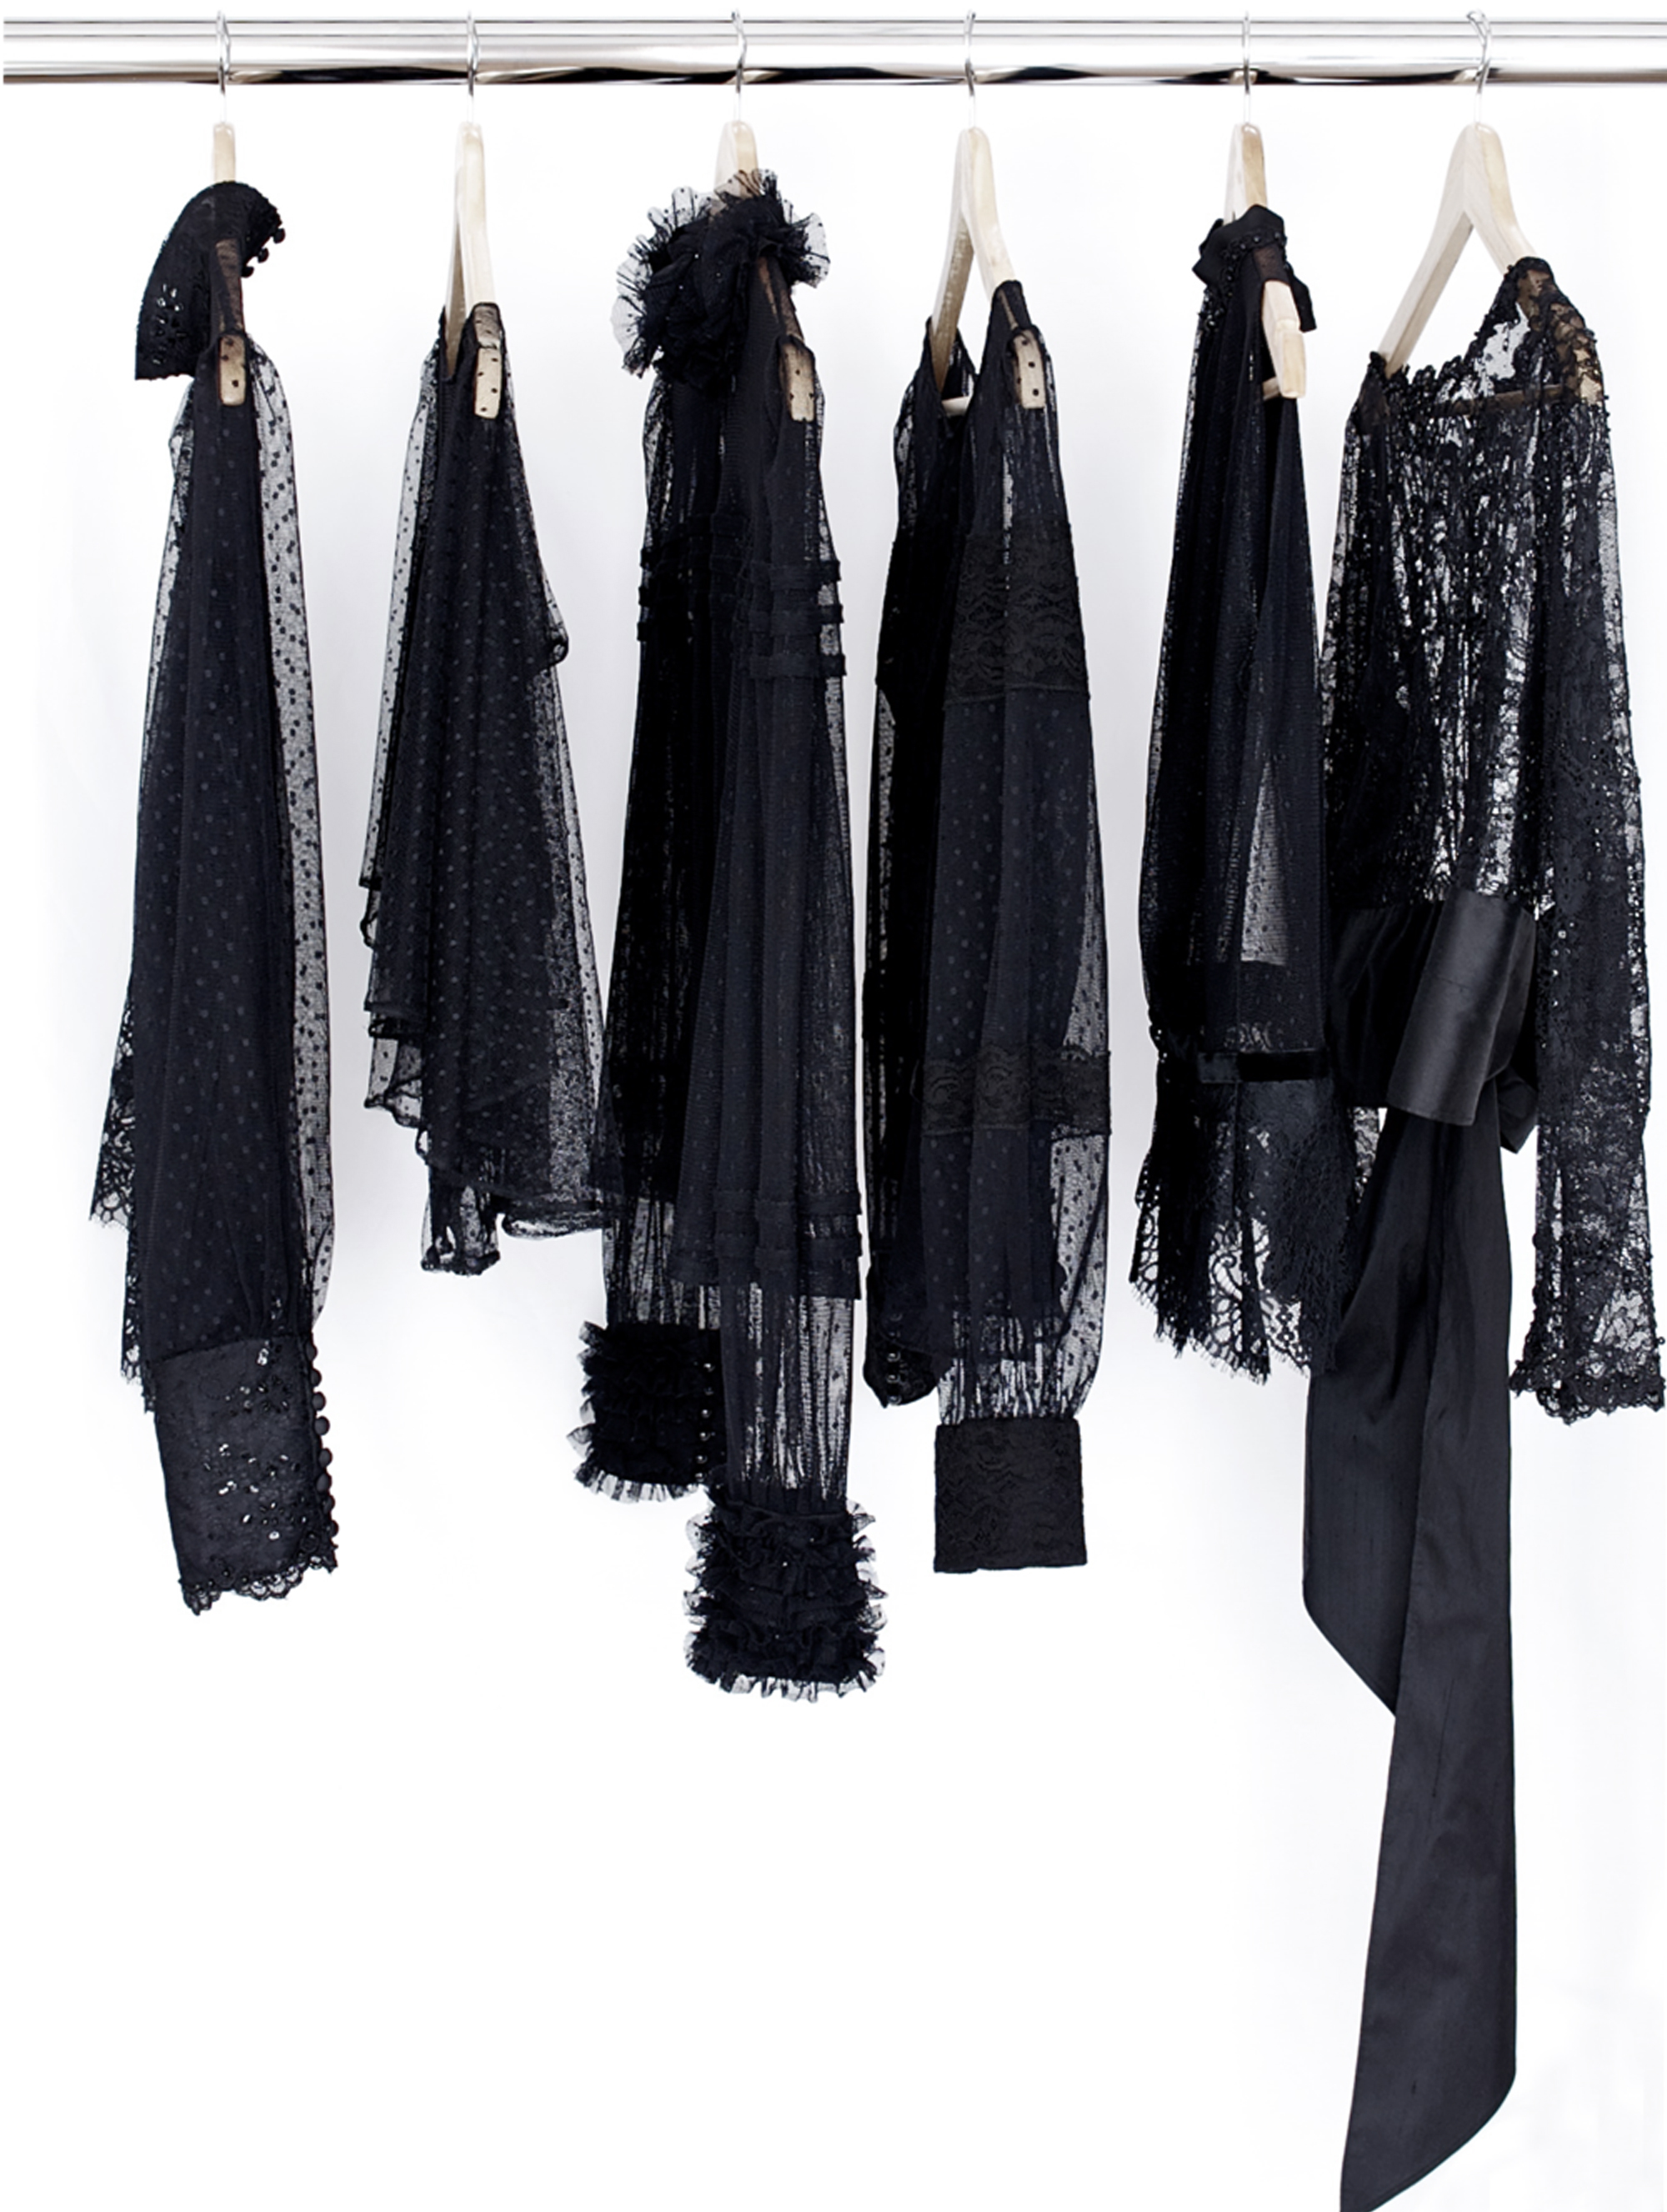 The collection of black lace evening wear tops